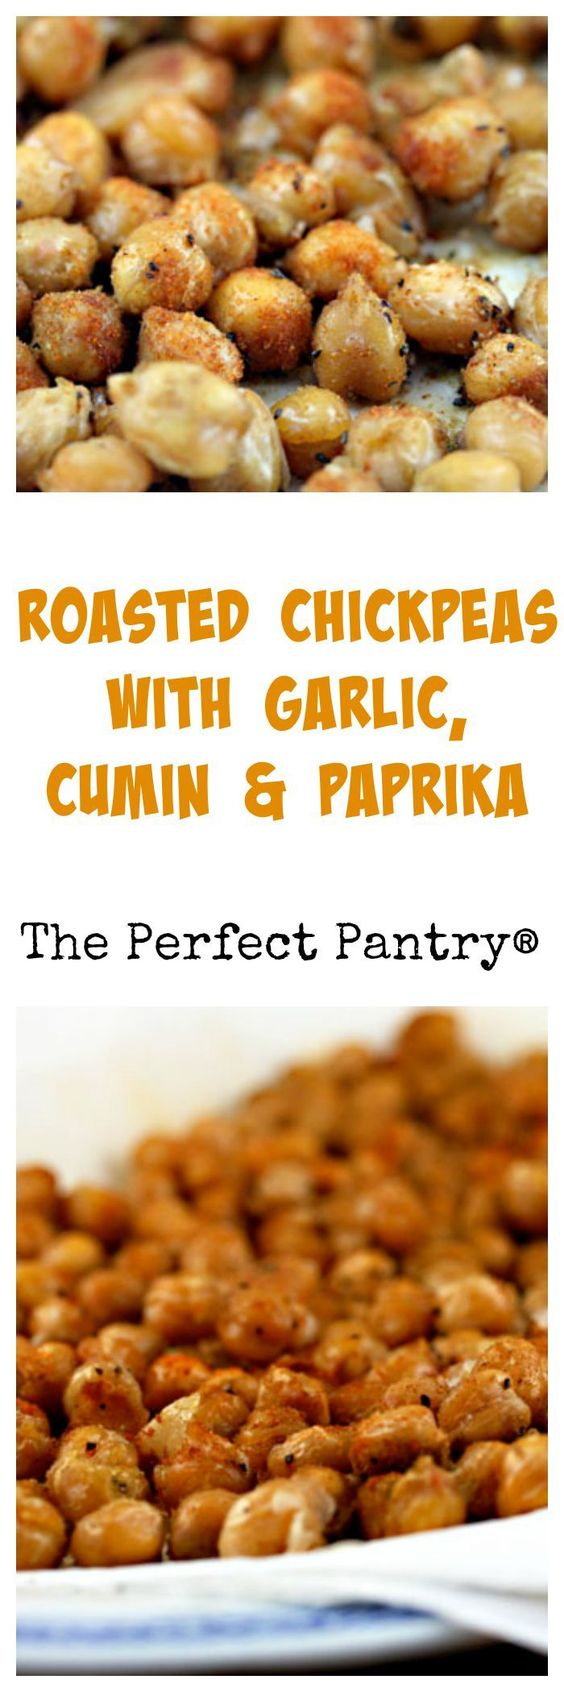 Roasted chickpeas with garlic, cumin and paprika: a tasty appetizer or ...